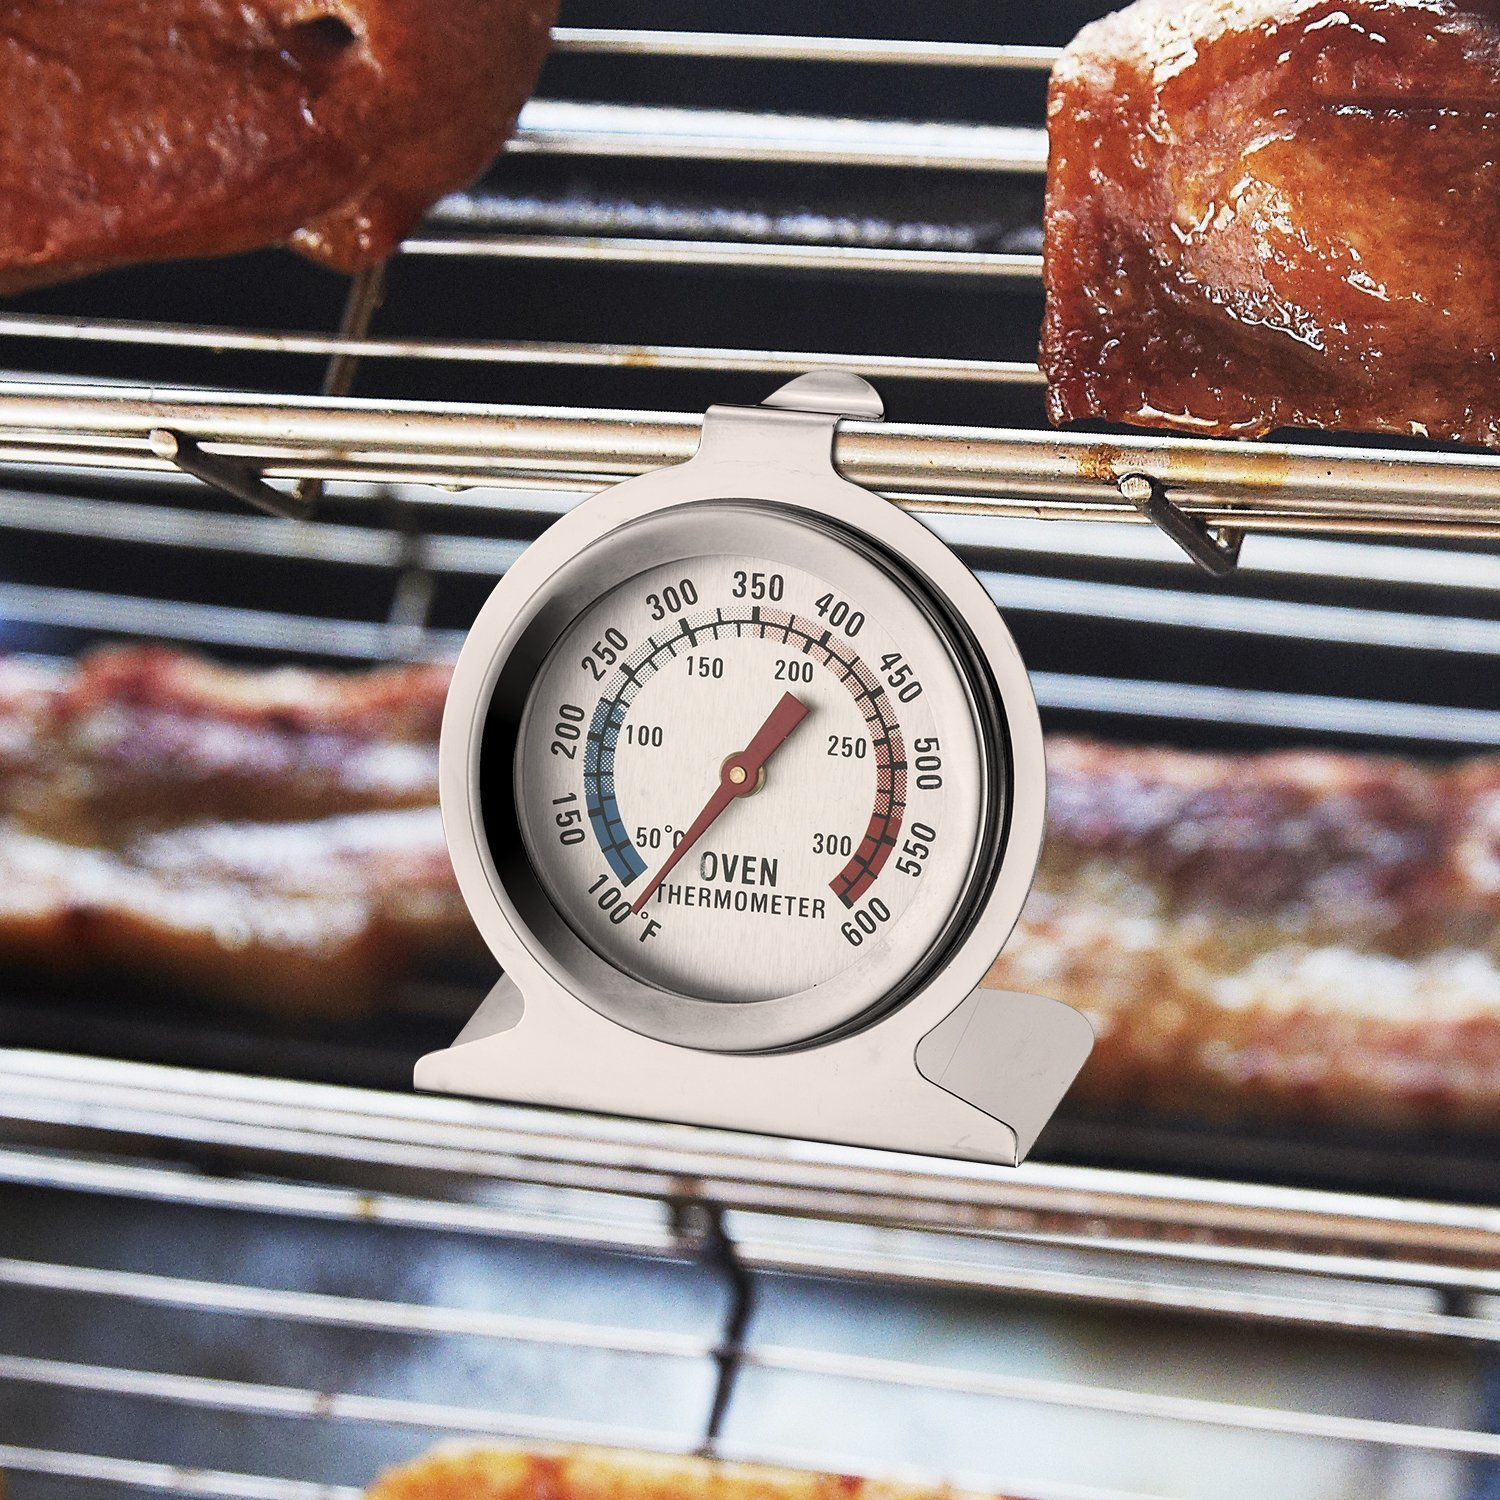 Taylor Precision Products Classic Series Large Dial Thermometer (2 Pack,Oven)